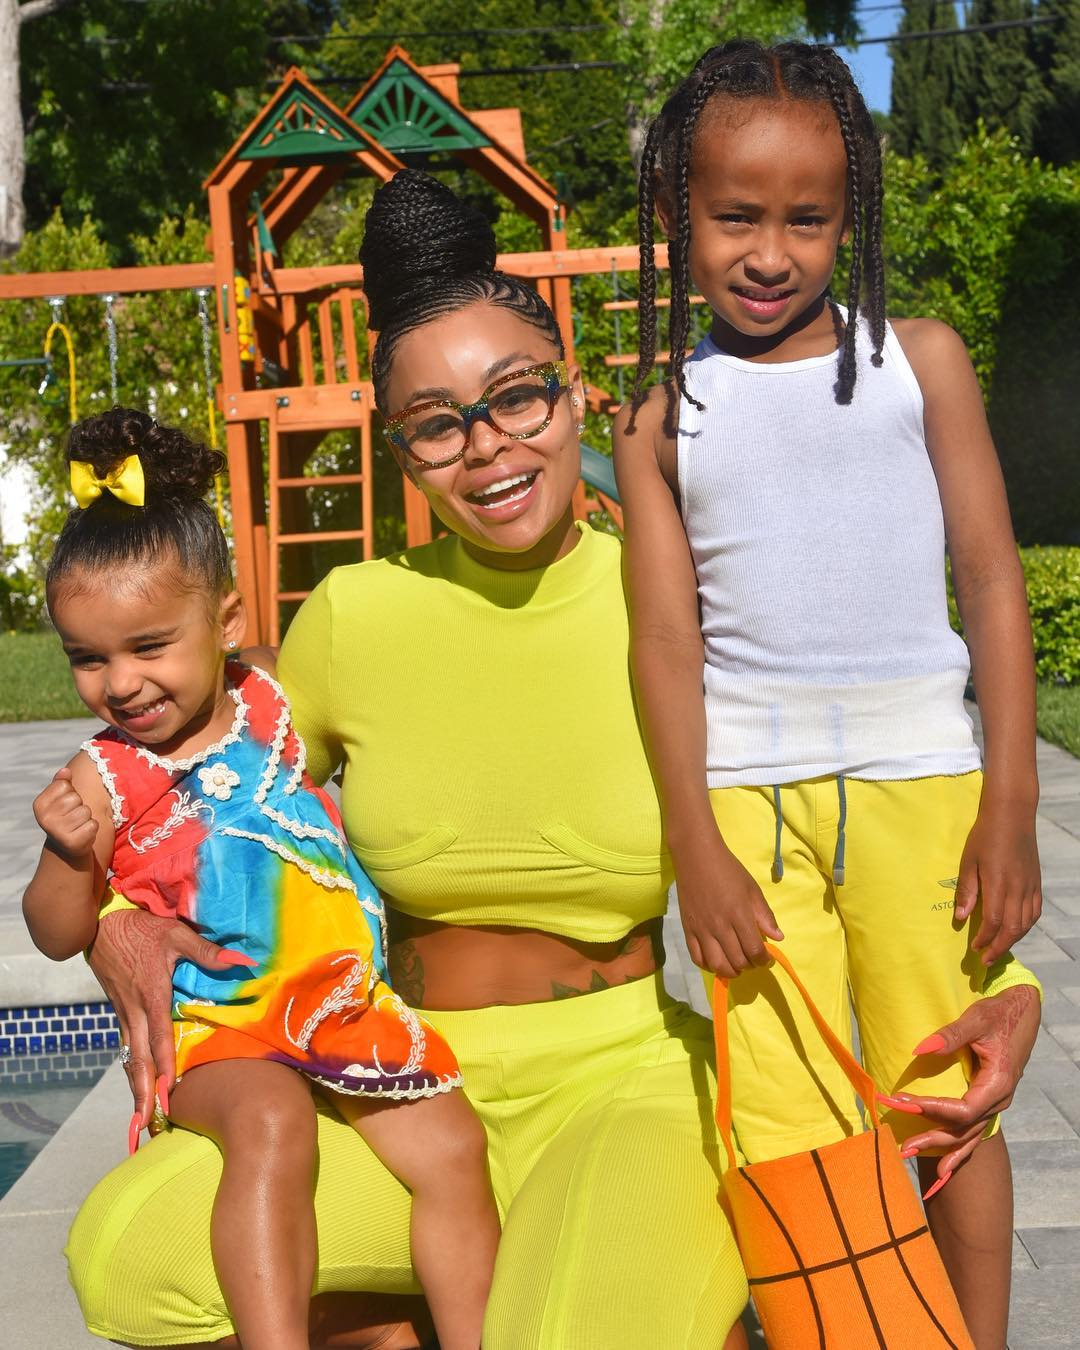 Blac Chyna's Latest Videos Of Her Kids, Dream And King Have Fans In Awe: Dream Is A True Rock Star And King Is Twinning With His Dad